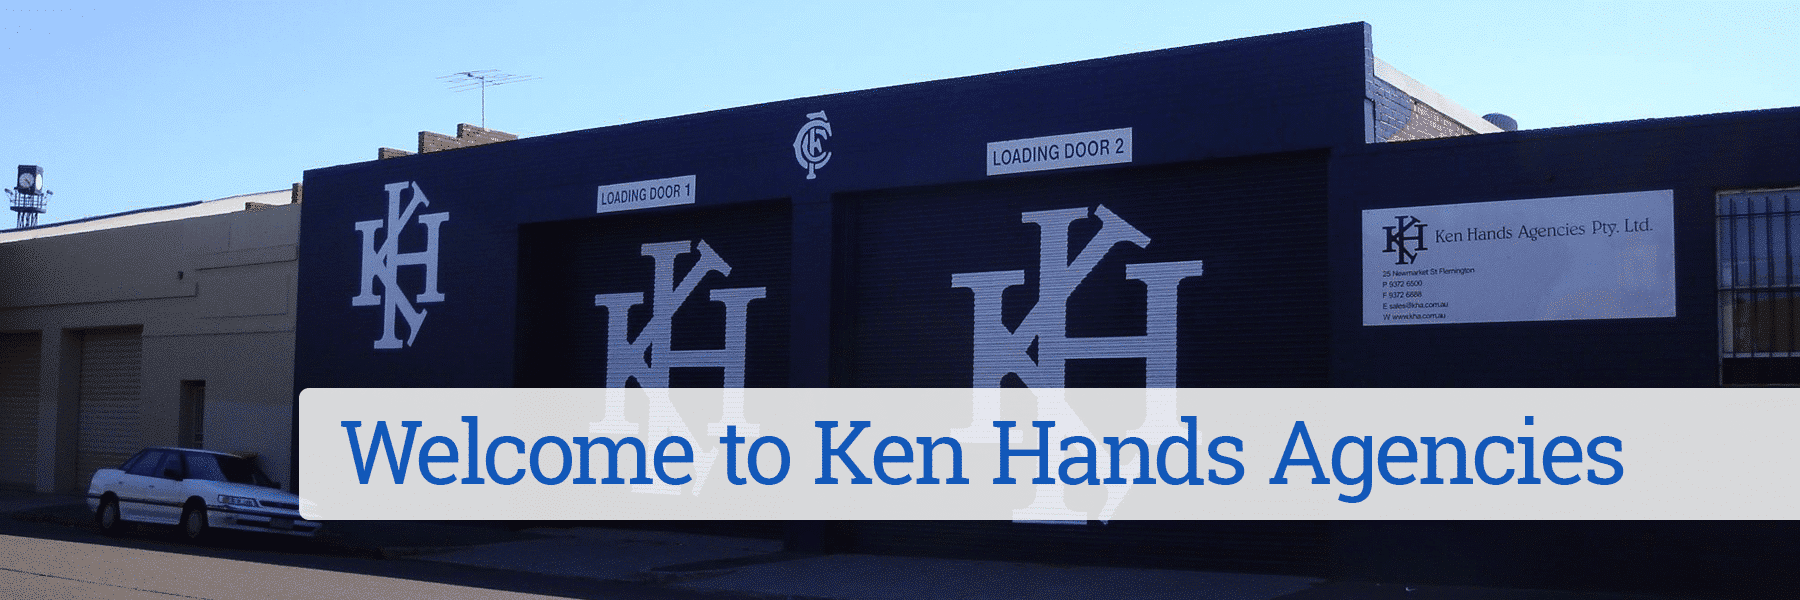 Welcome to Ken Hands Agencies